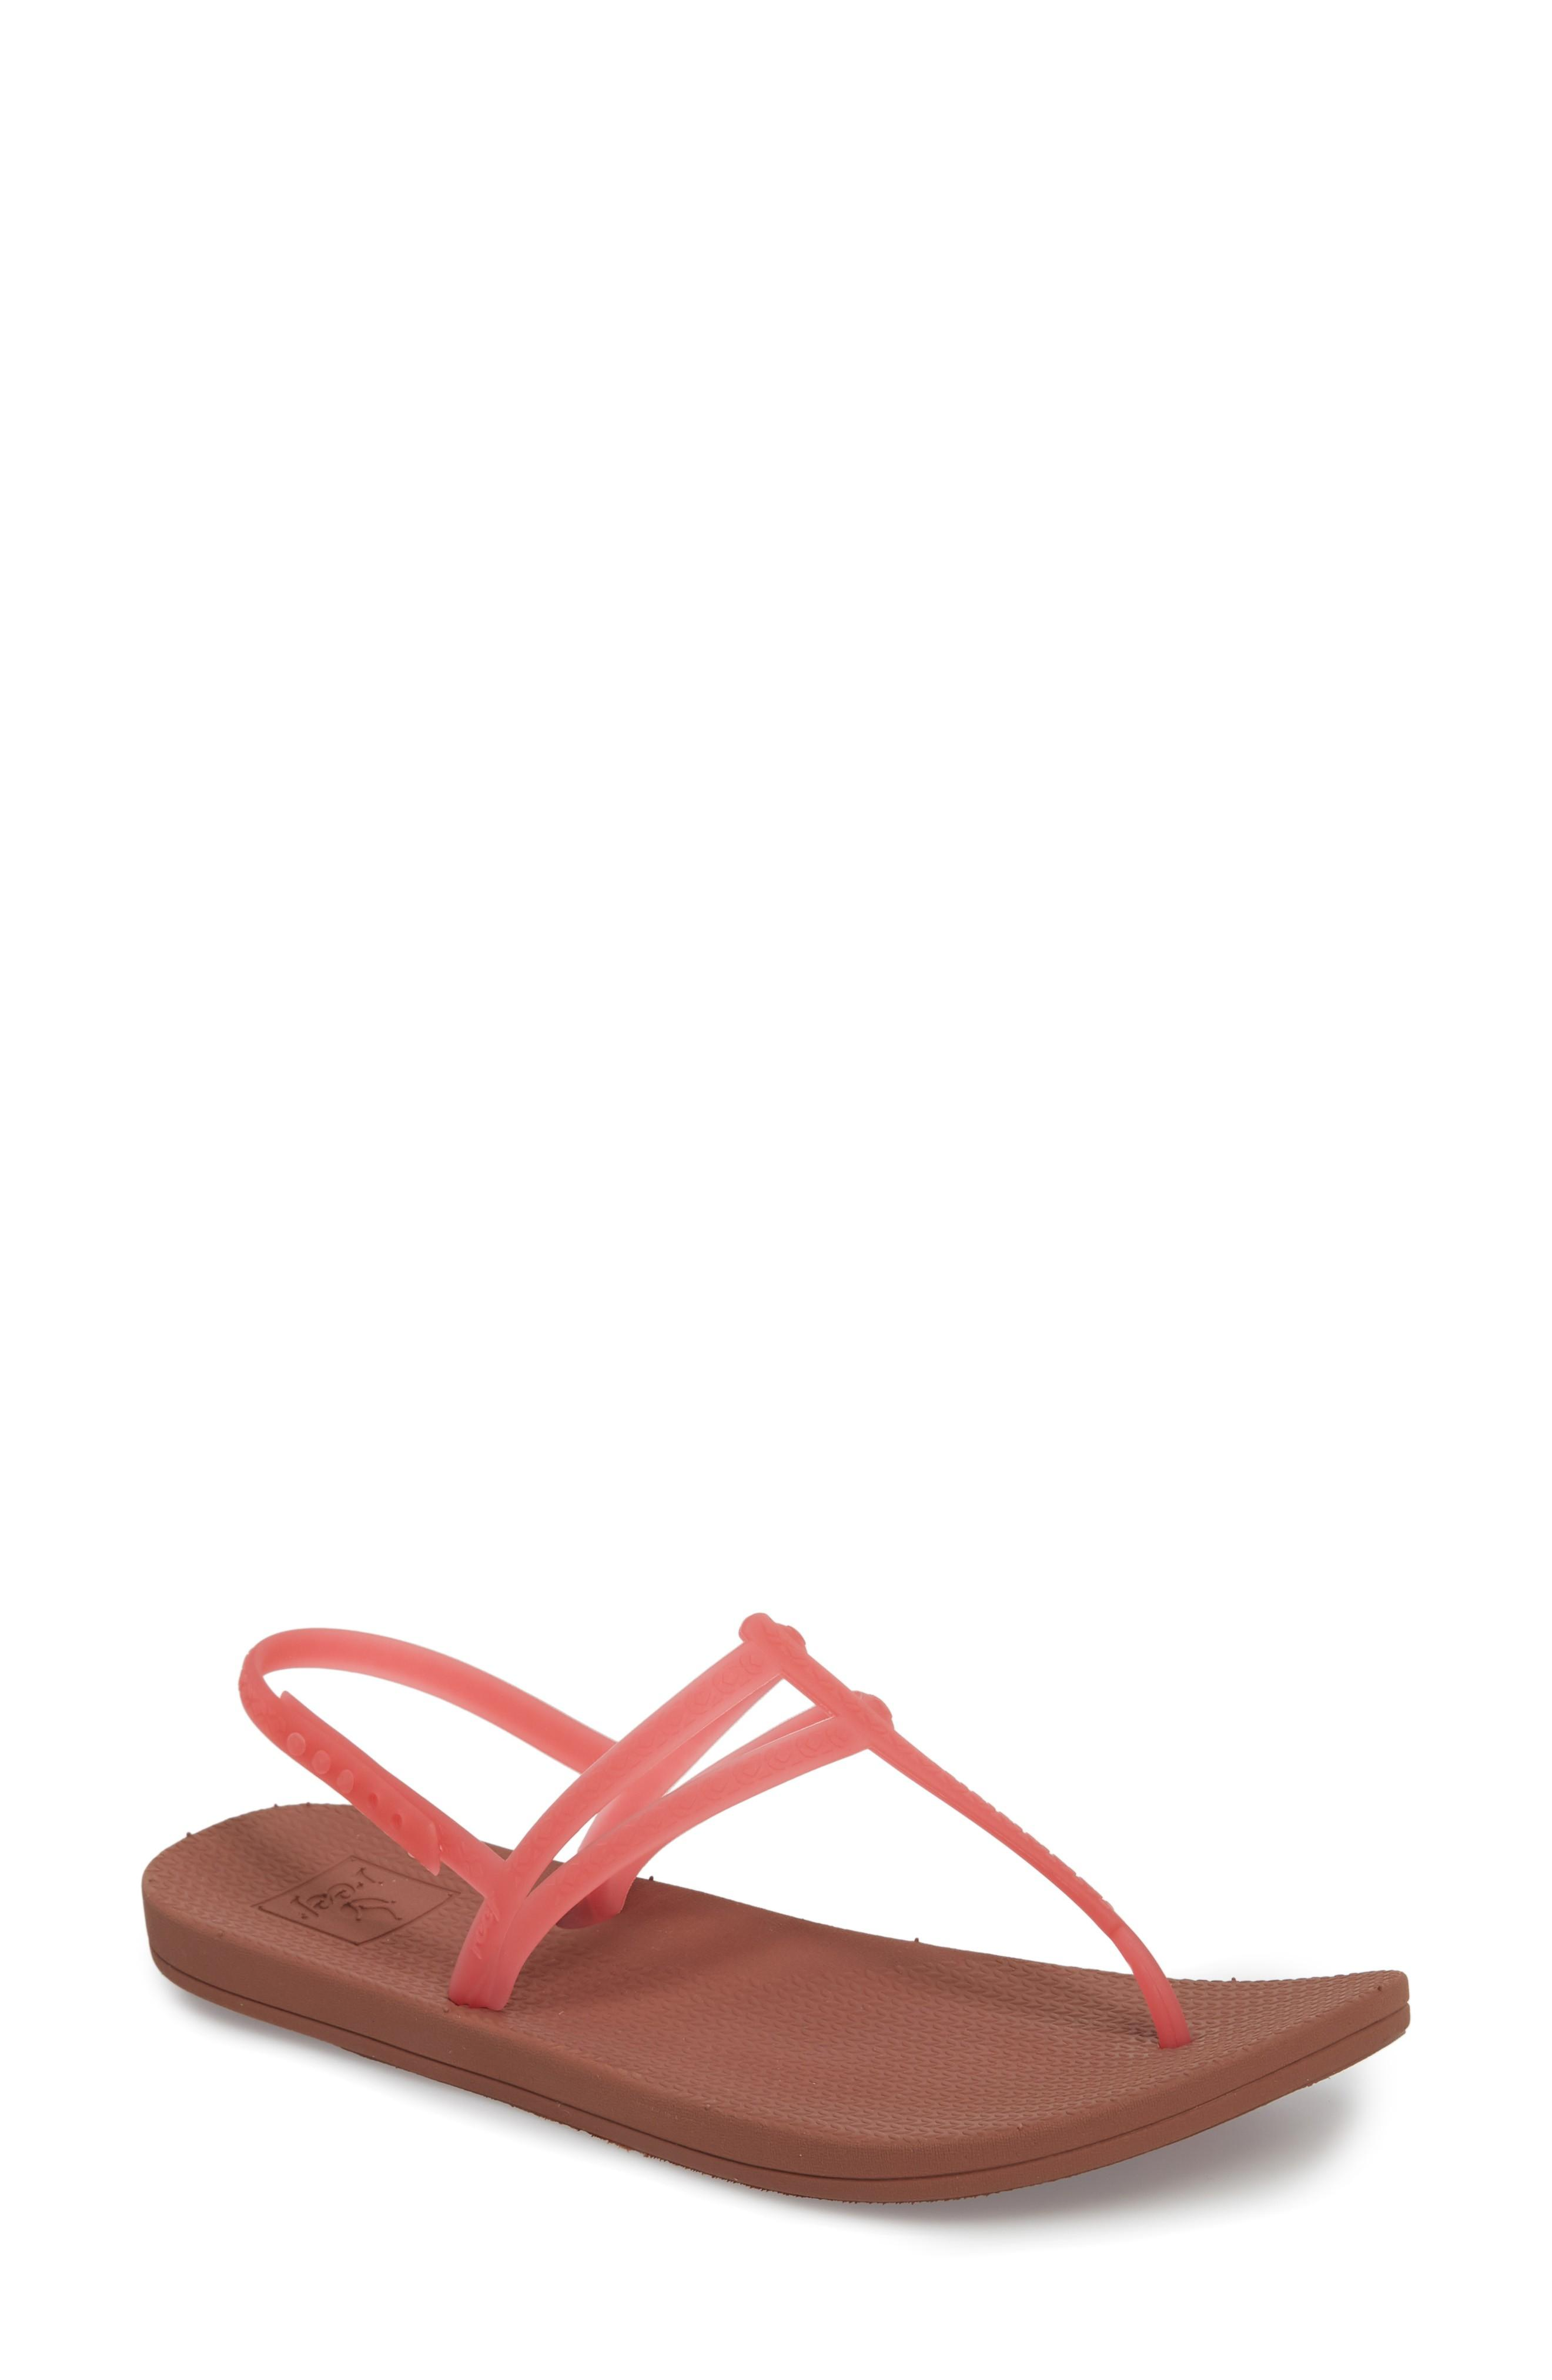 43e08a8f95ef Reef Escape Lux T-Strap Sandal In Hot Pink